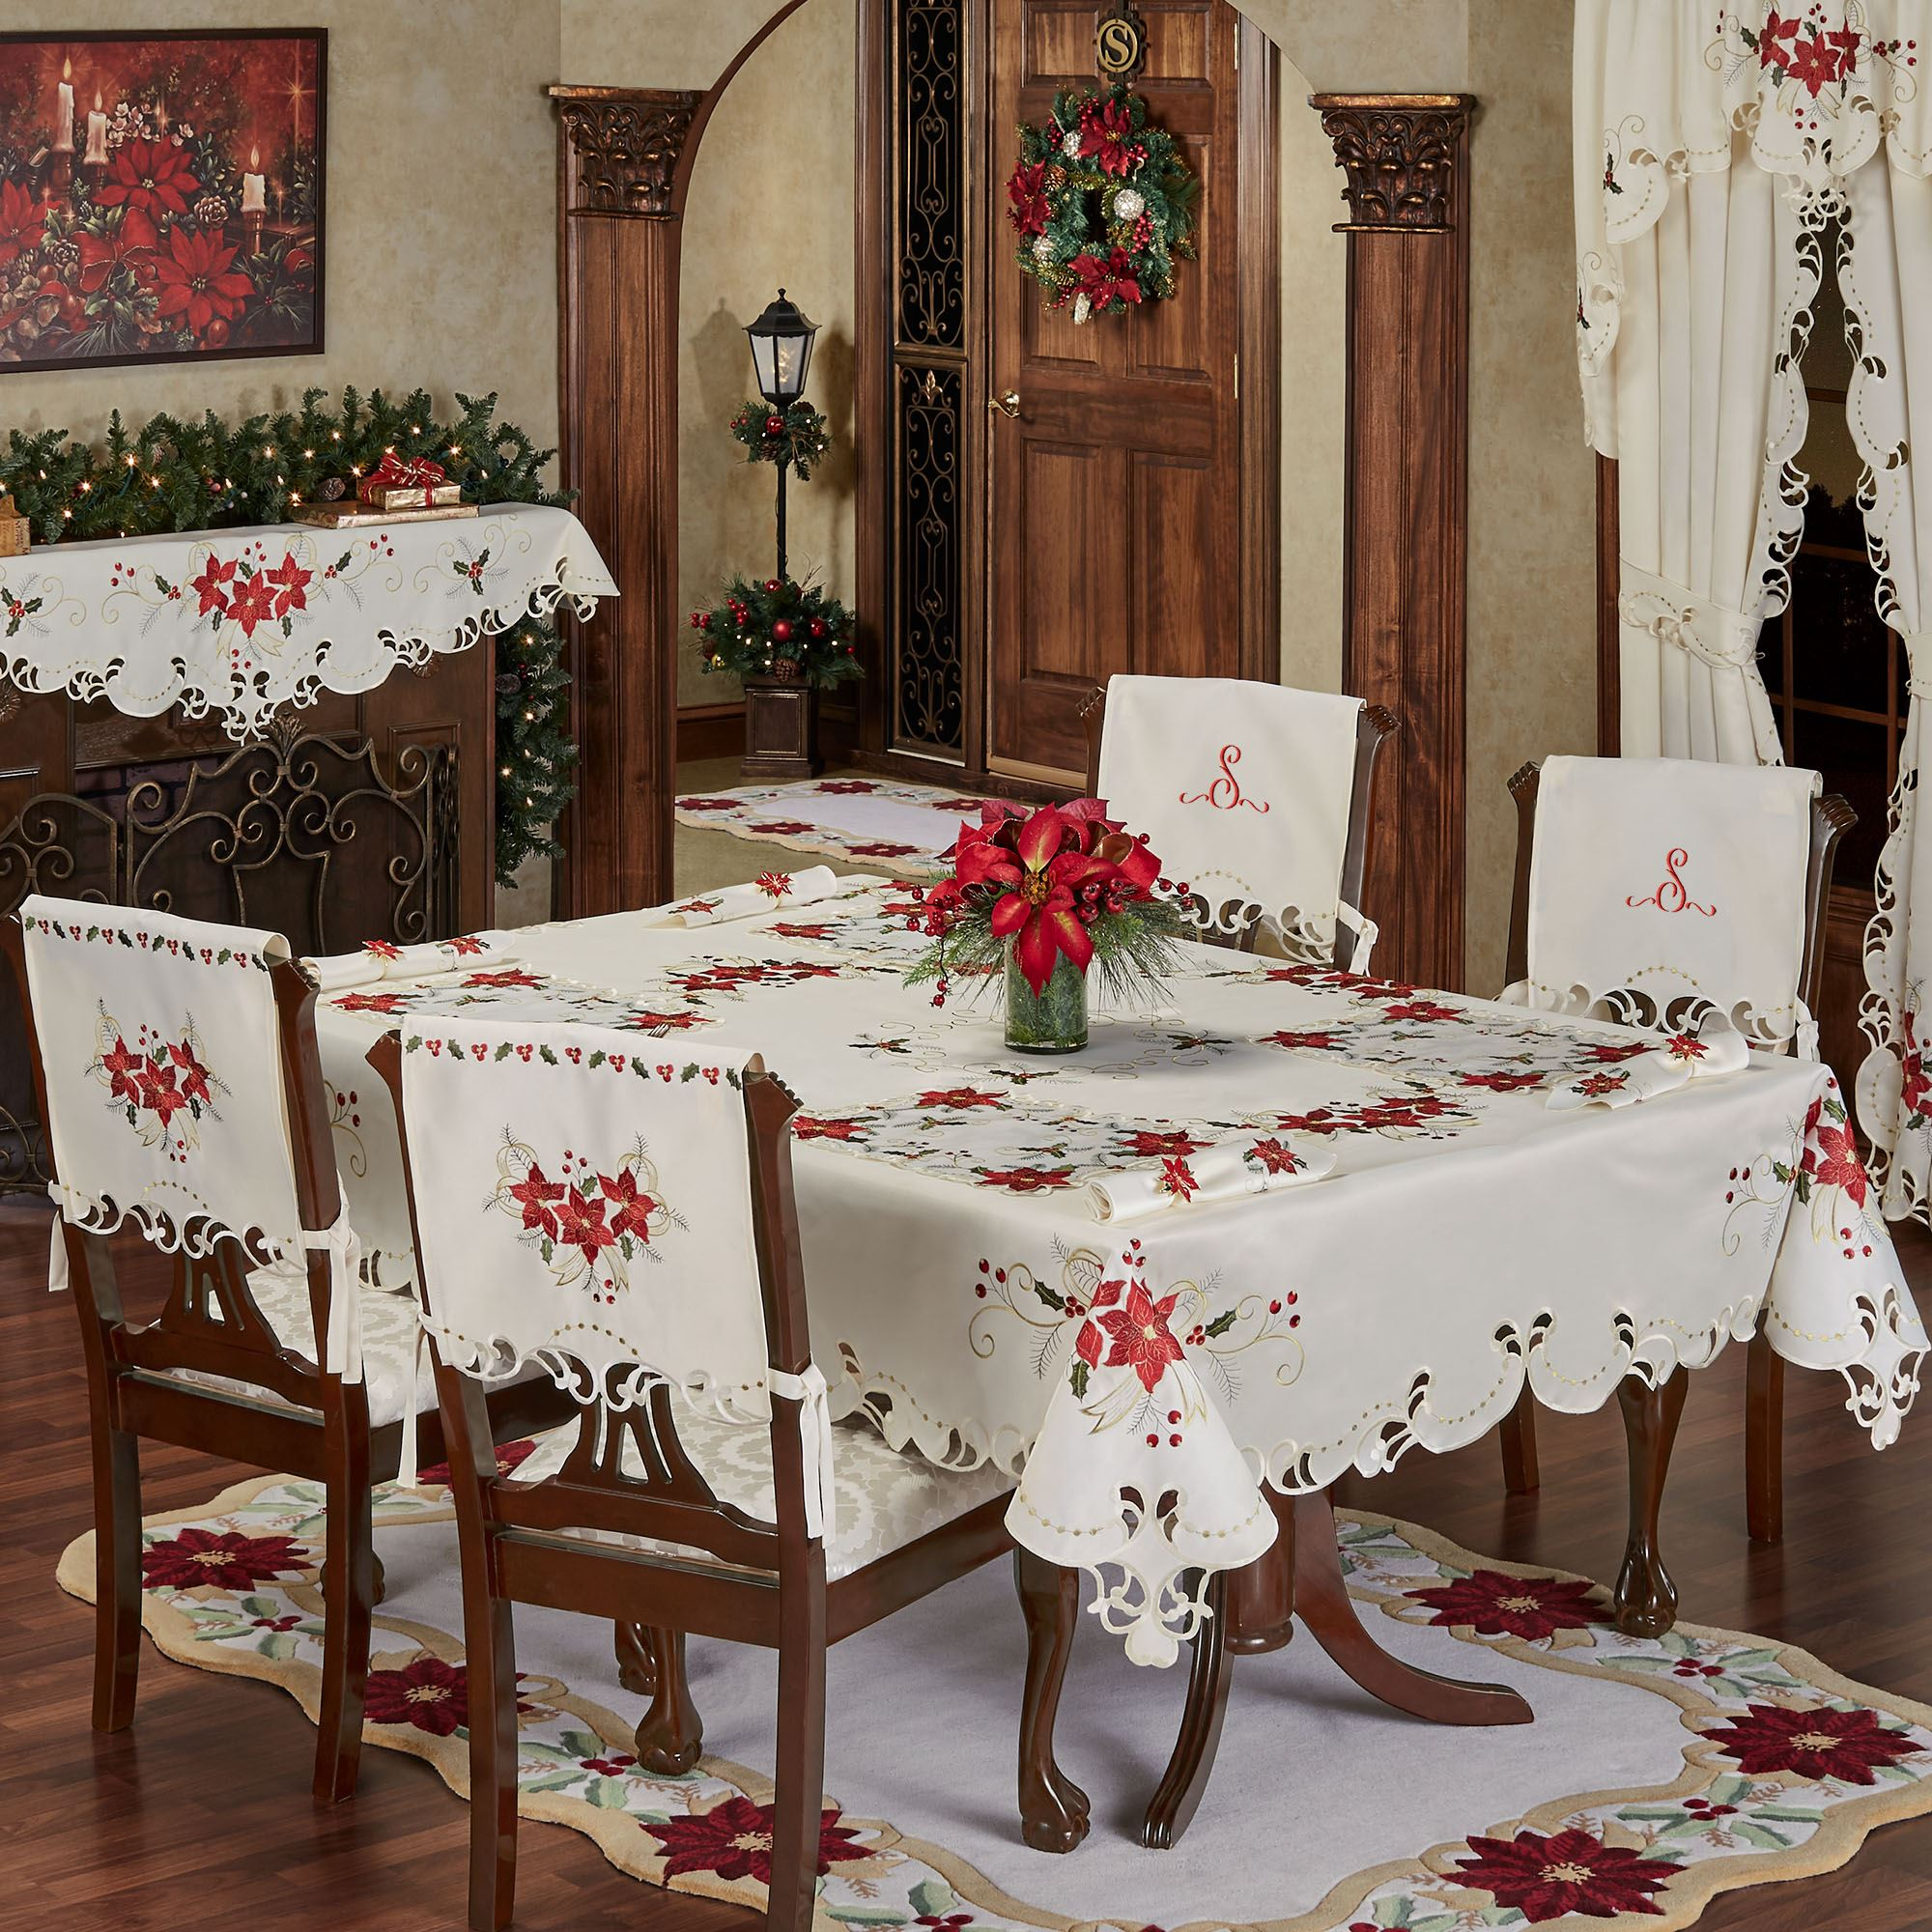 Dining Room Table Linens dining table cover ideas large size of dining room table linen ideas grid tablecloth set font Poinsettia Palace Tablecloth Champagne Click To Expand